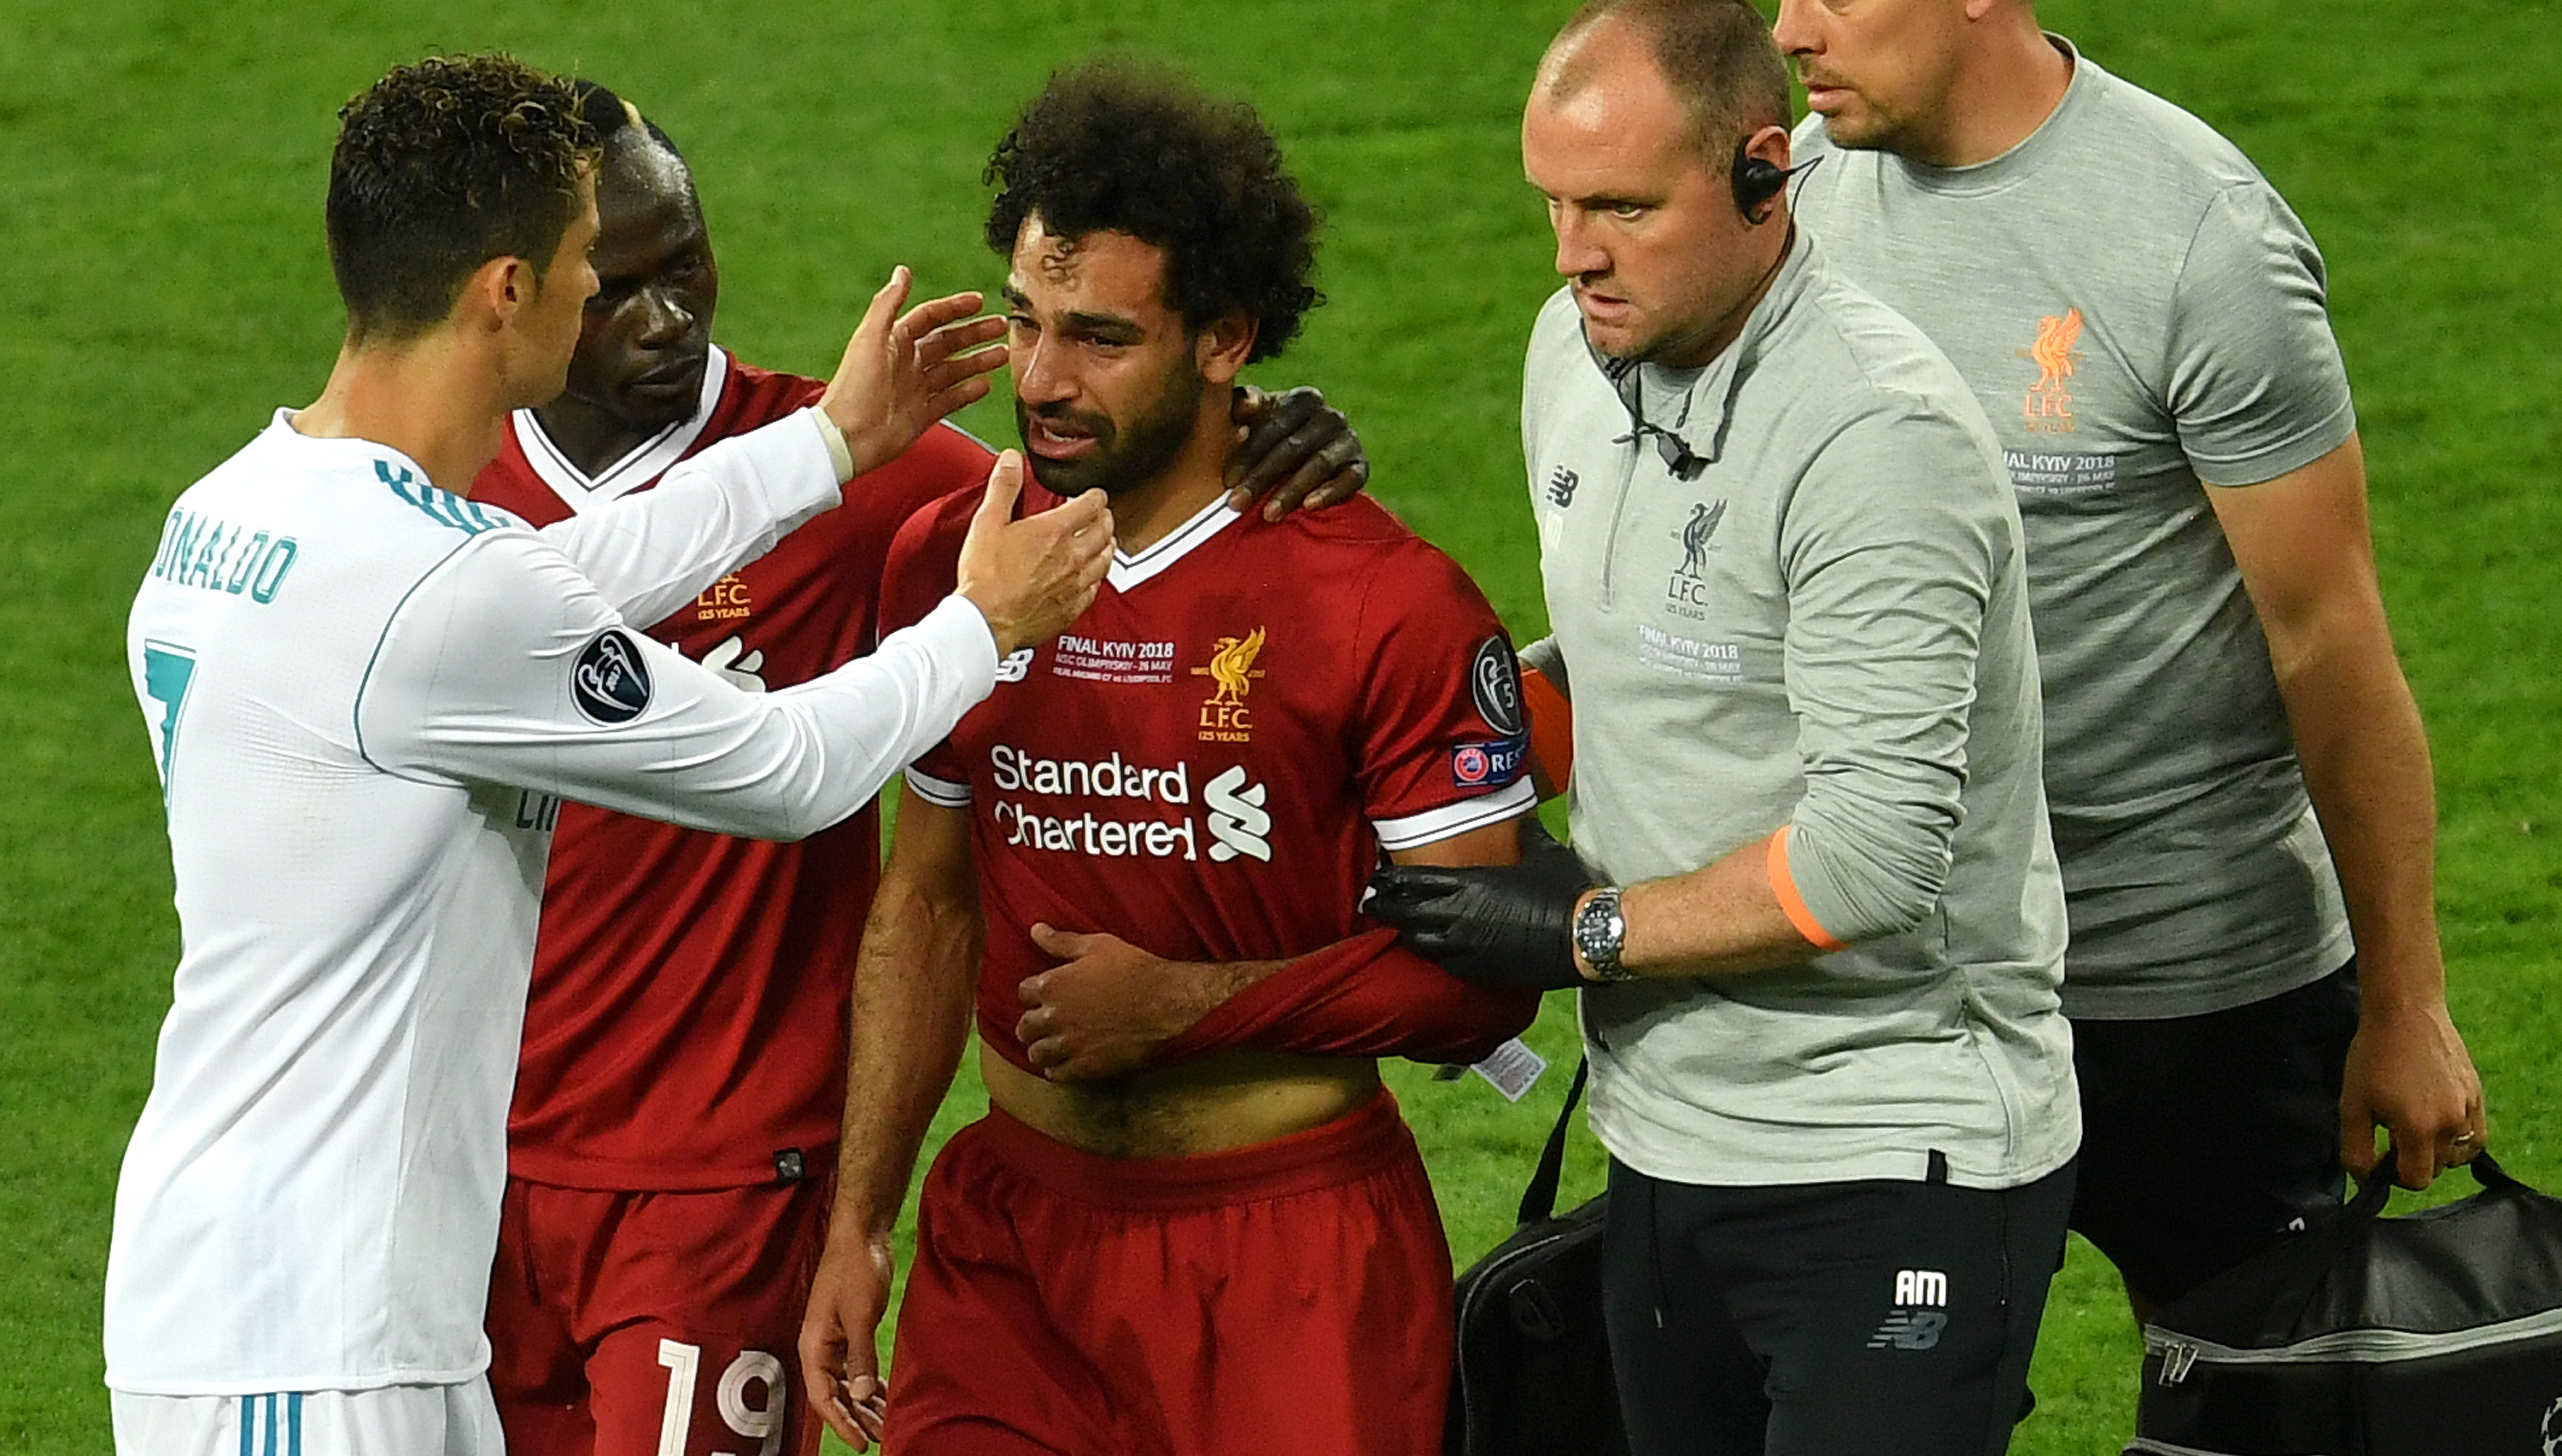 Liverpool's Virgil van Dijk slams 'jealous' rivals following Champions League defeat